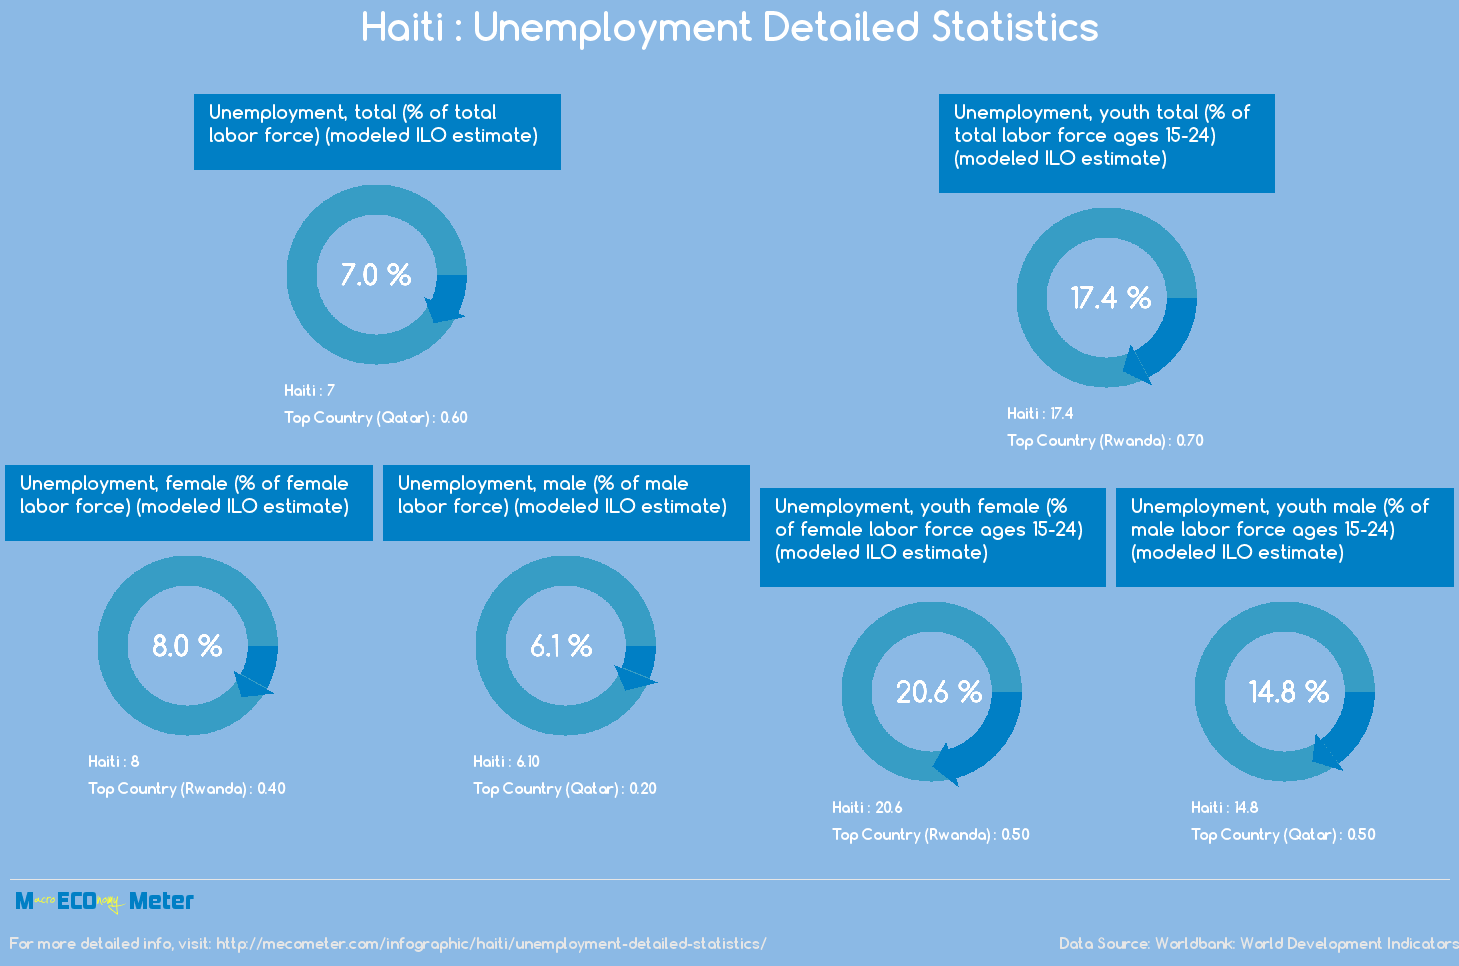 Haiti : Unemployment Detailed Statistics